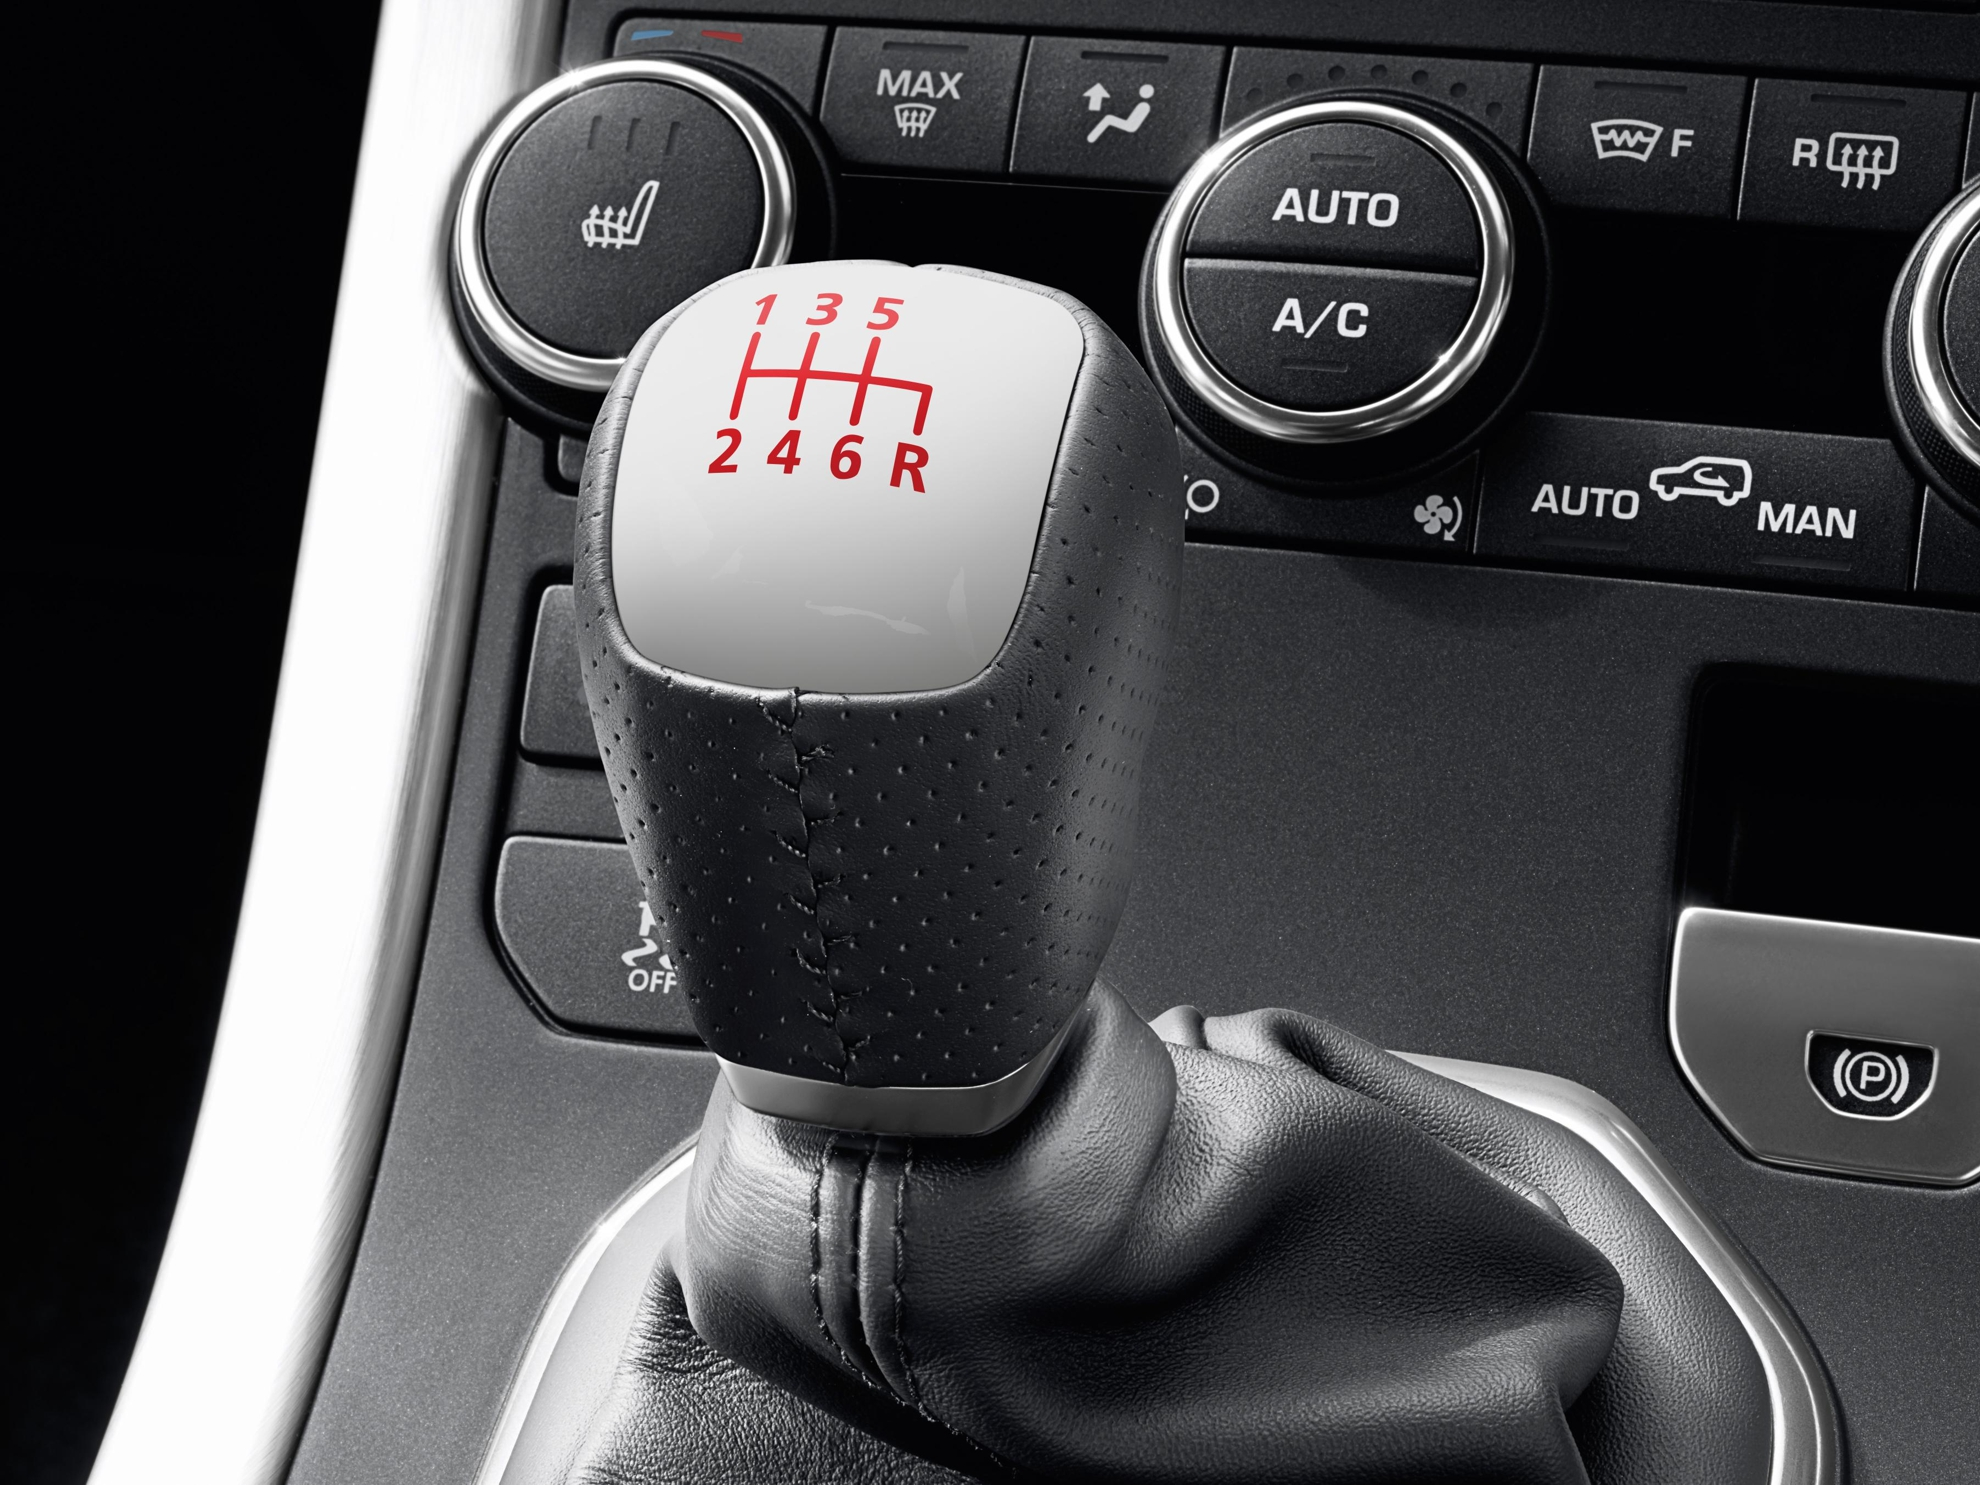 Range-Rover-Evoque-Controls